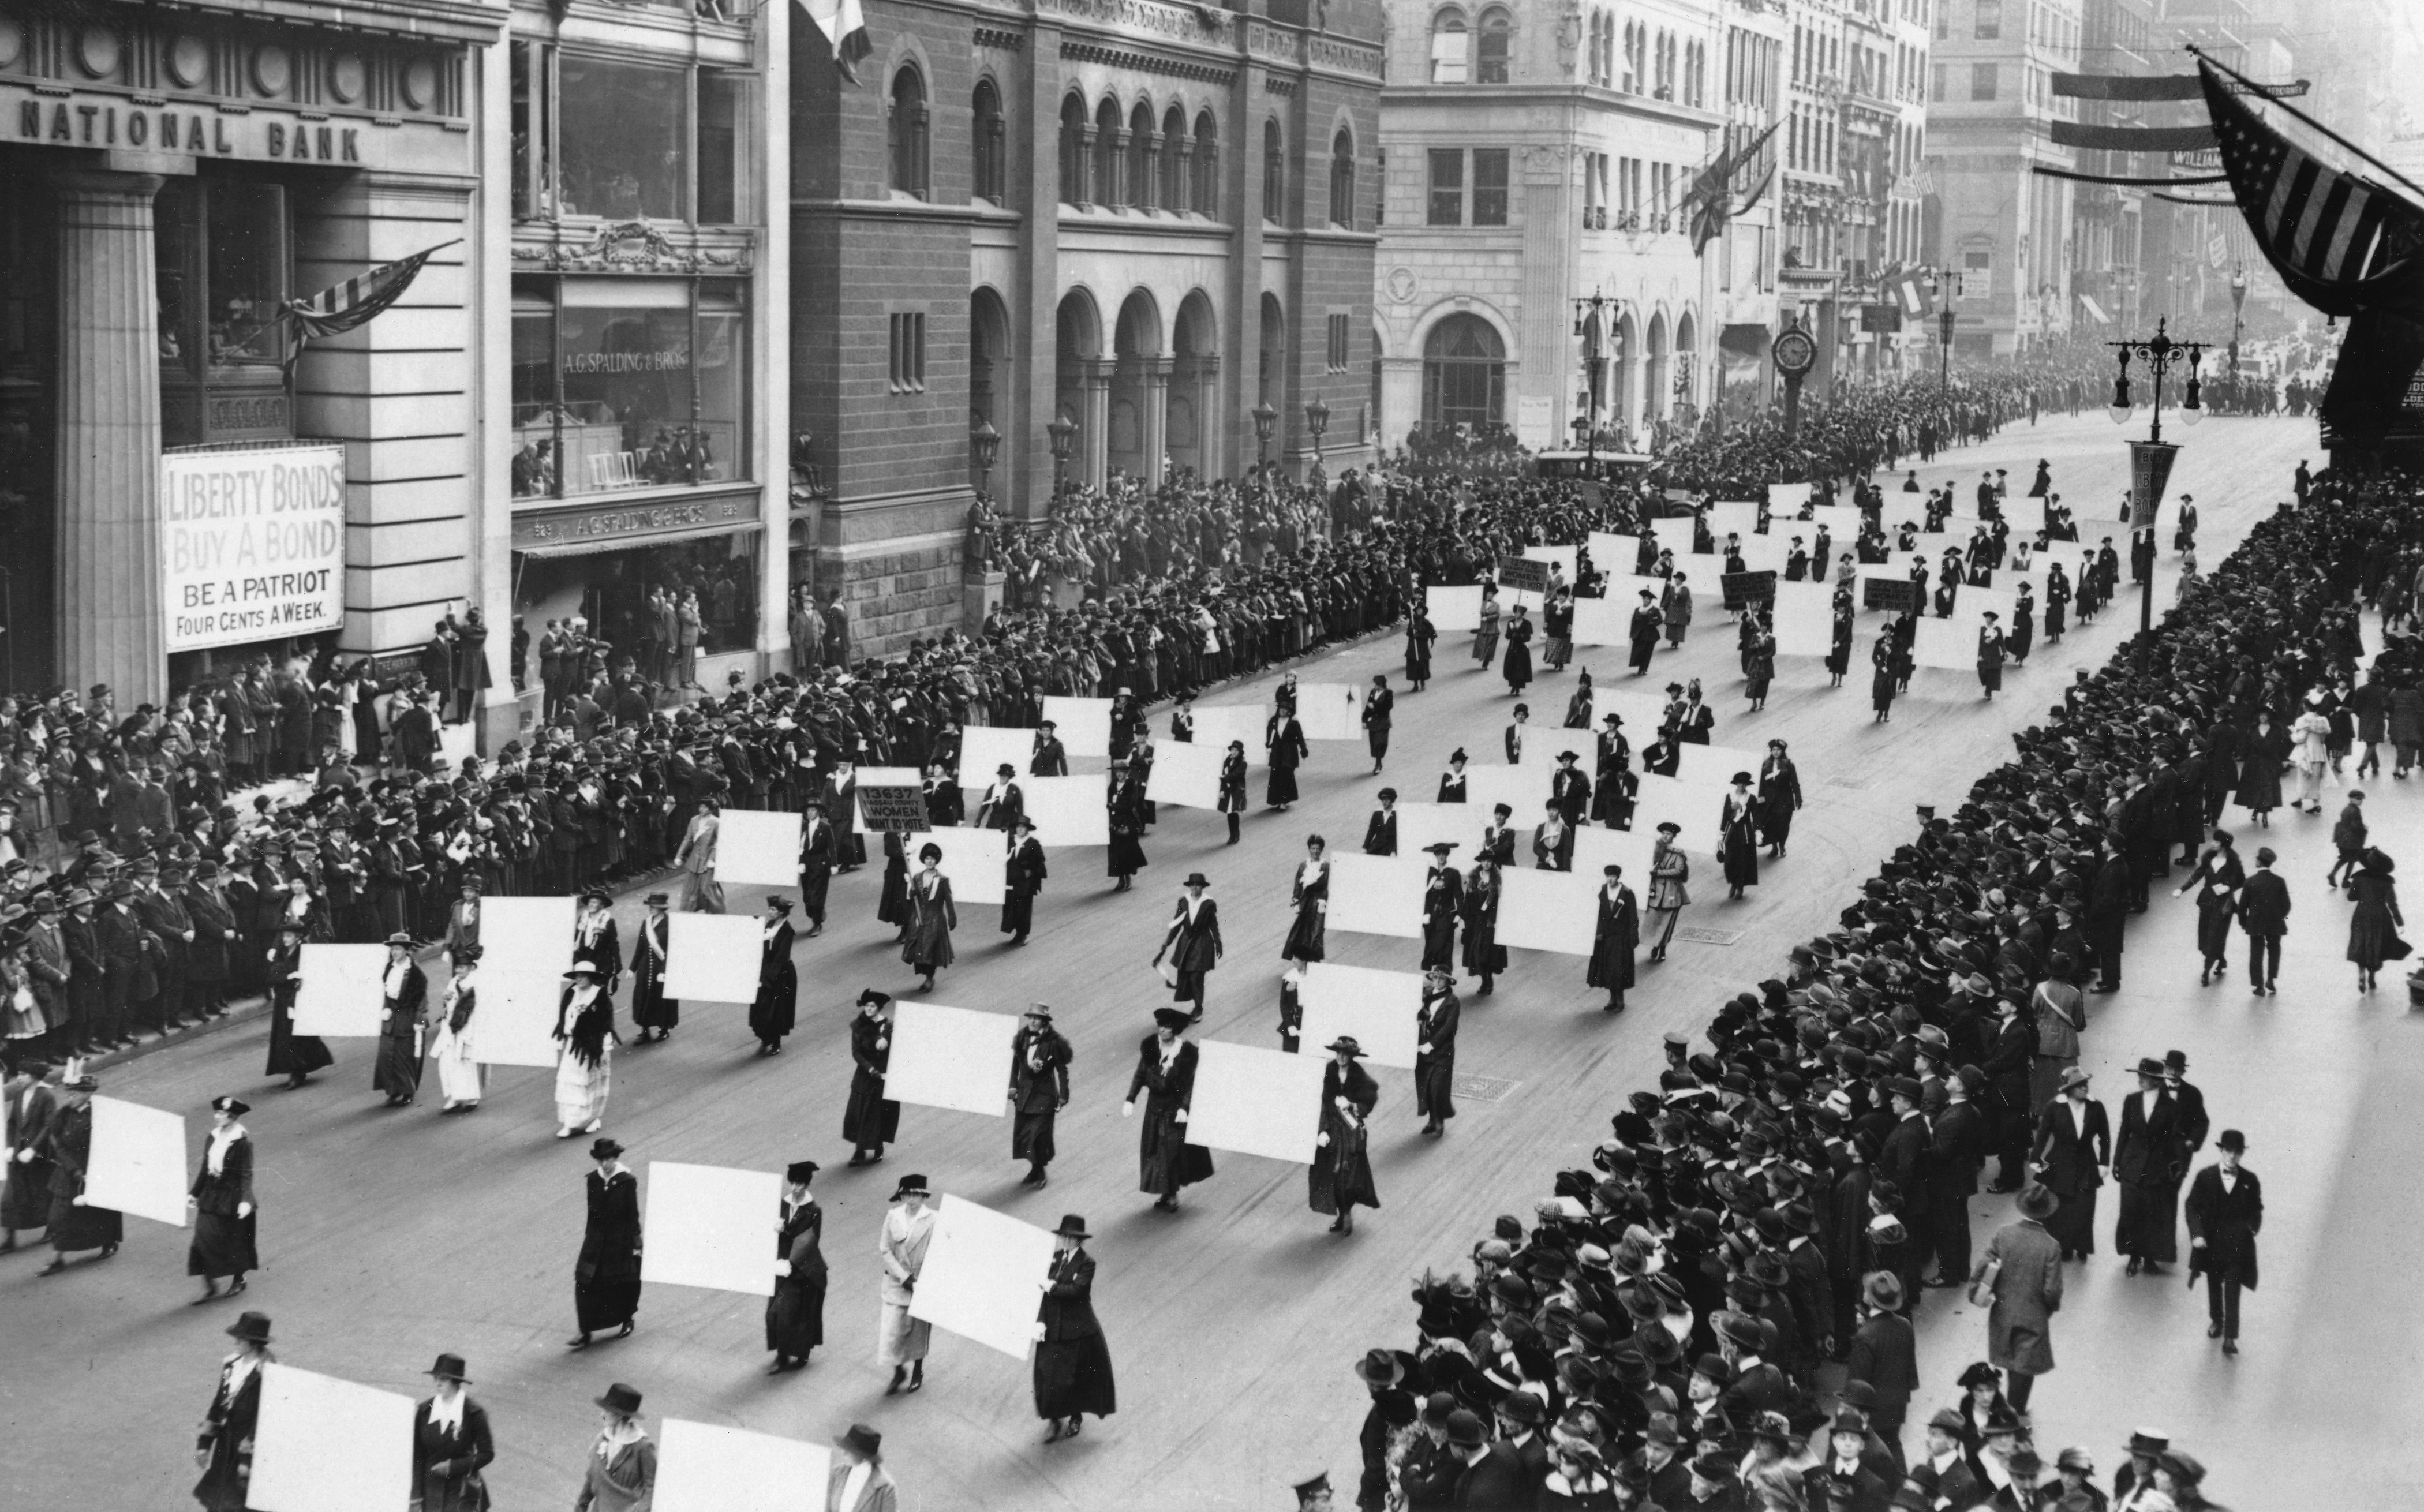 Suffragists march down Fifth Avenue, 1917 (The New York Times/Redux)